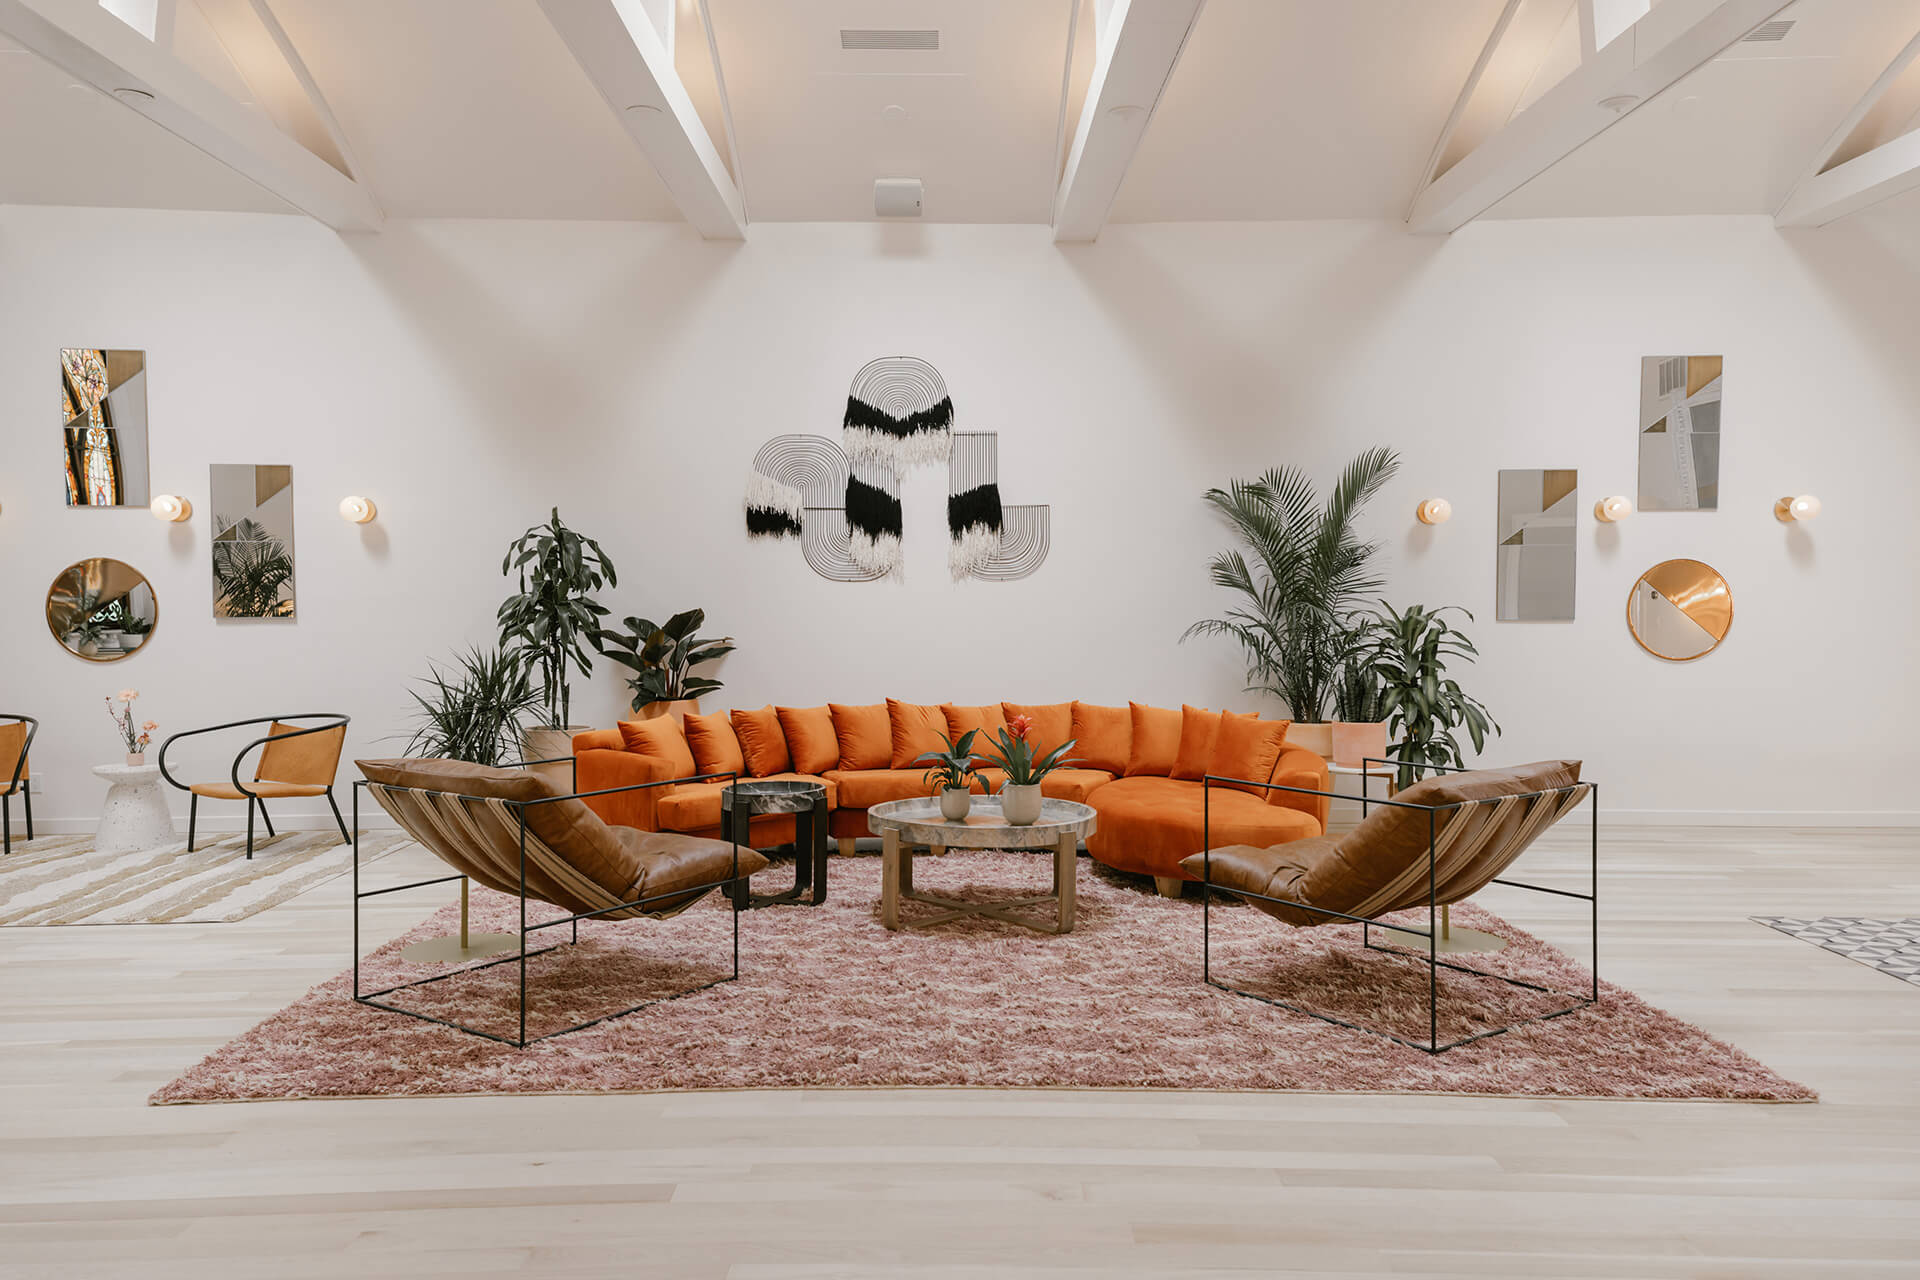 Inside The Ruby Street, a creative community hub in LA | The Ruby Street in LA is a coworking space by Working Holiday Studio and Francesca De La Fuente | STIRworld